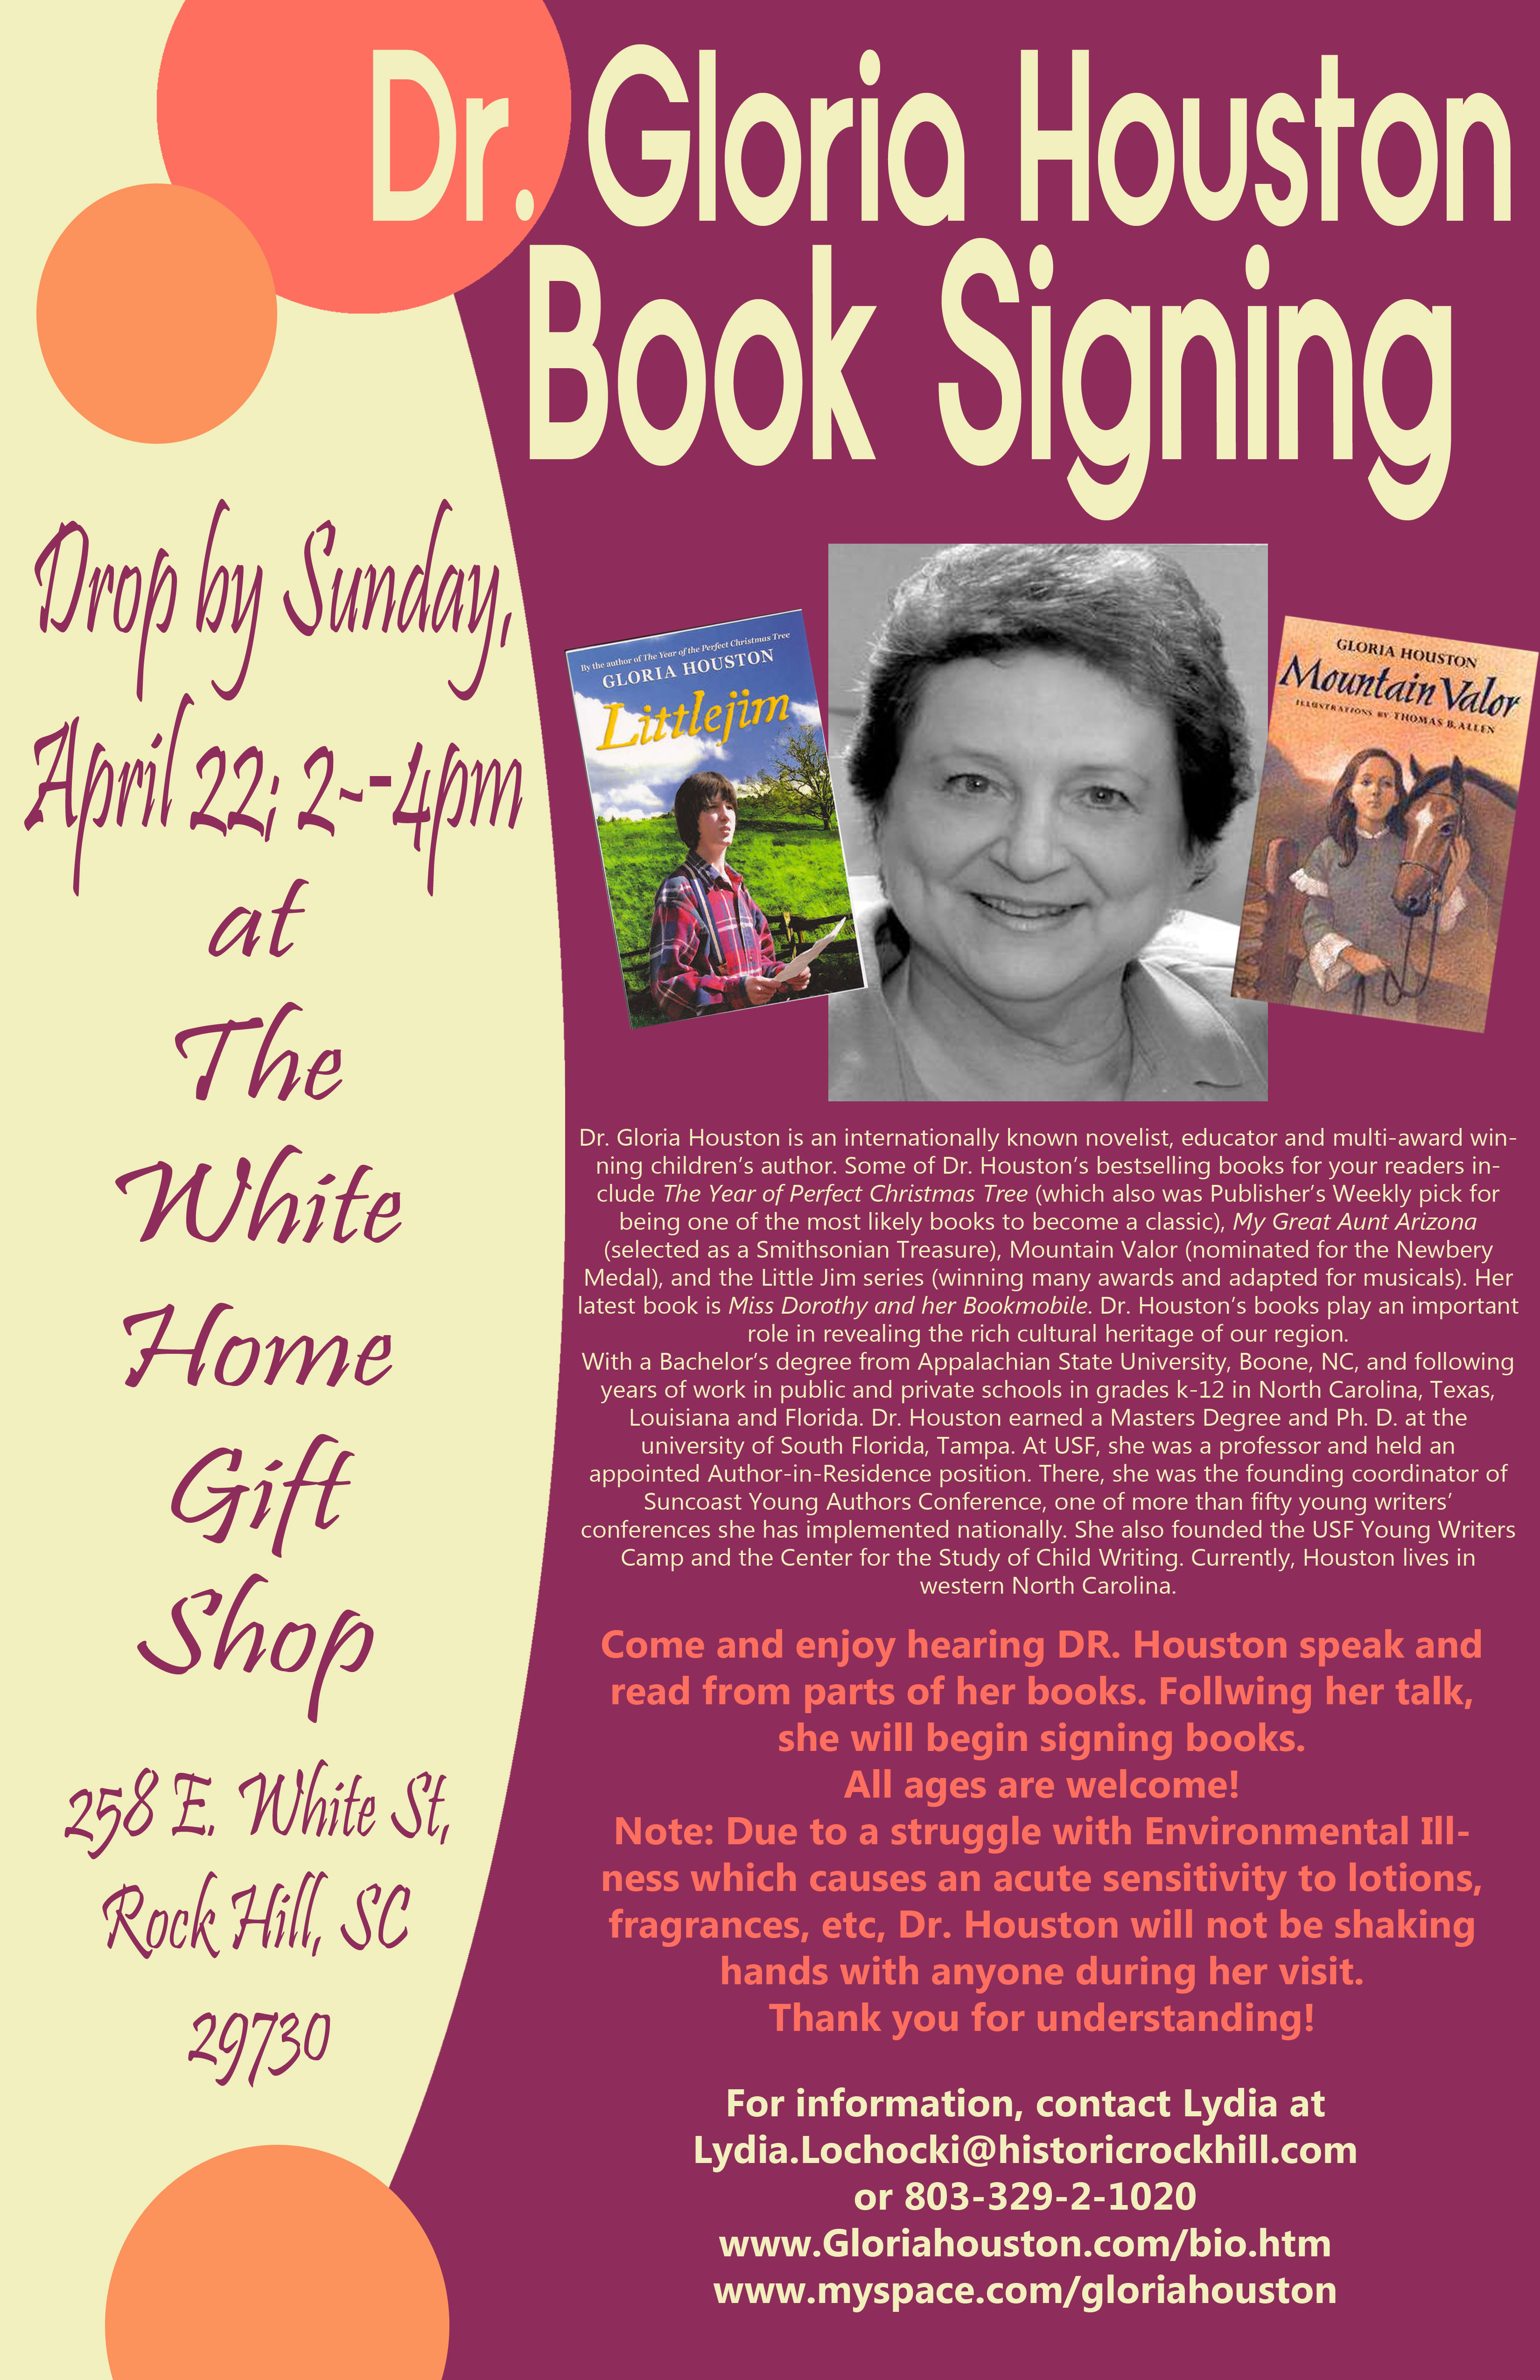 Book Signing Poster | ACunningham24